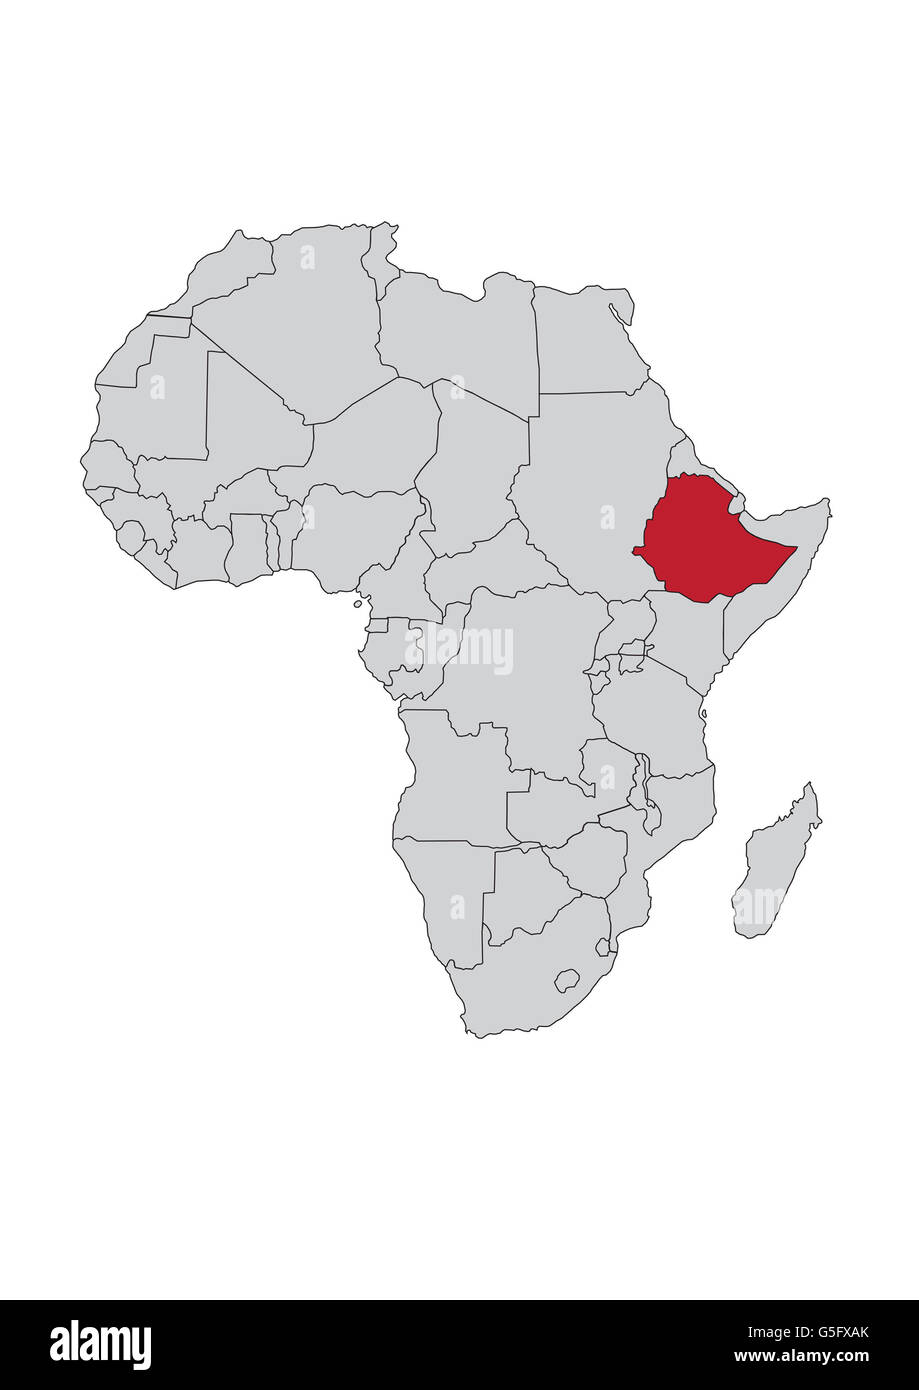 Map of Africa Ethiopia Stock Photo 106685451 Alamy